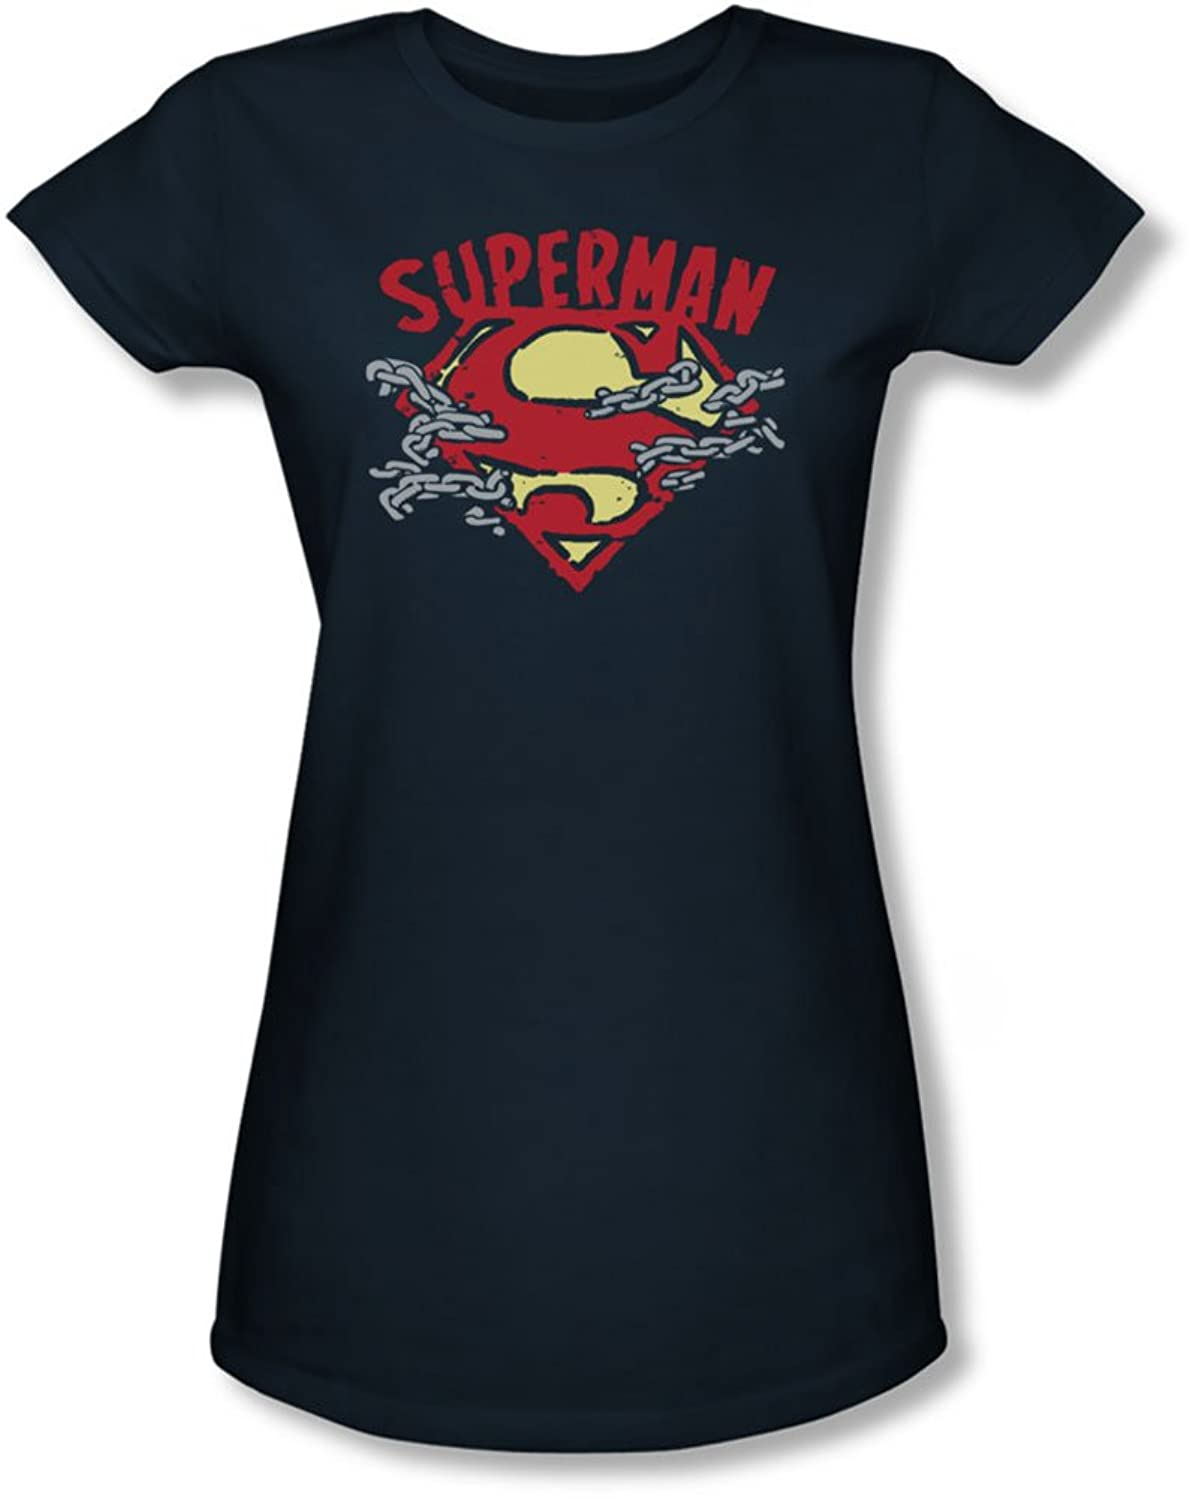 Superman Juniors Chain Breaking Sheer T Shirt